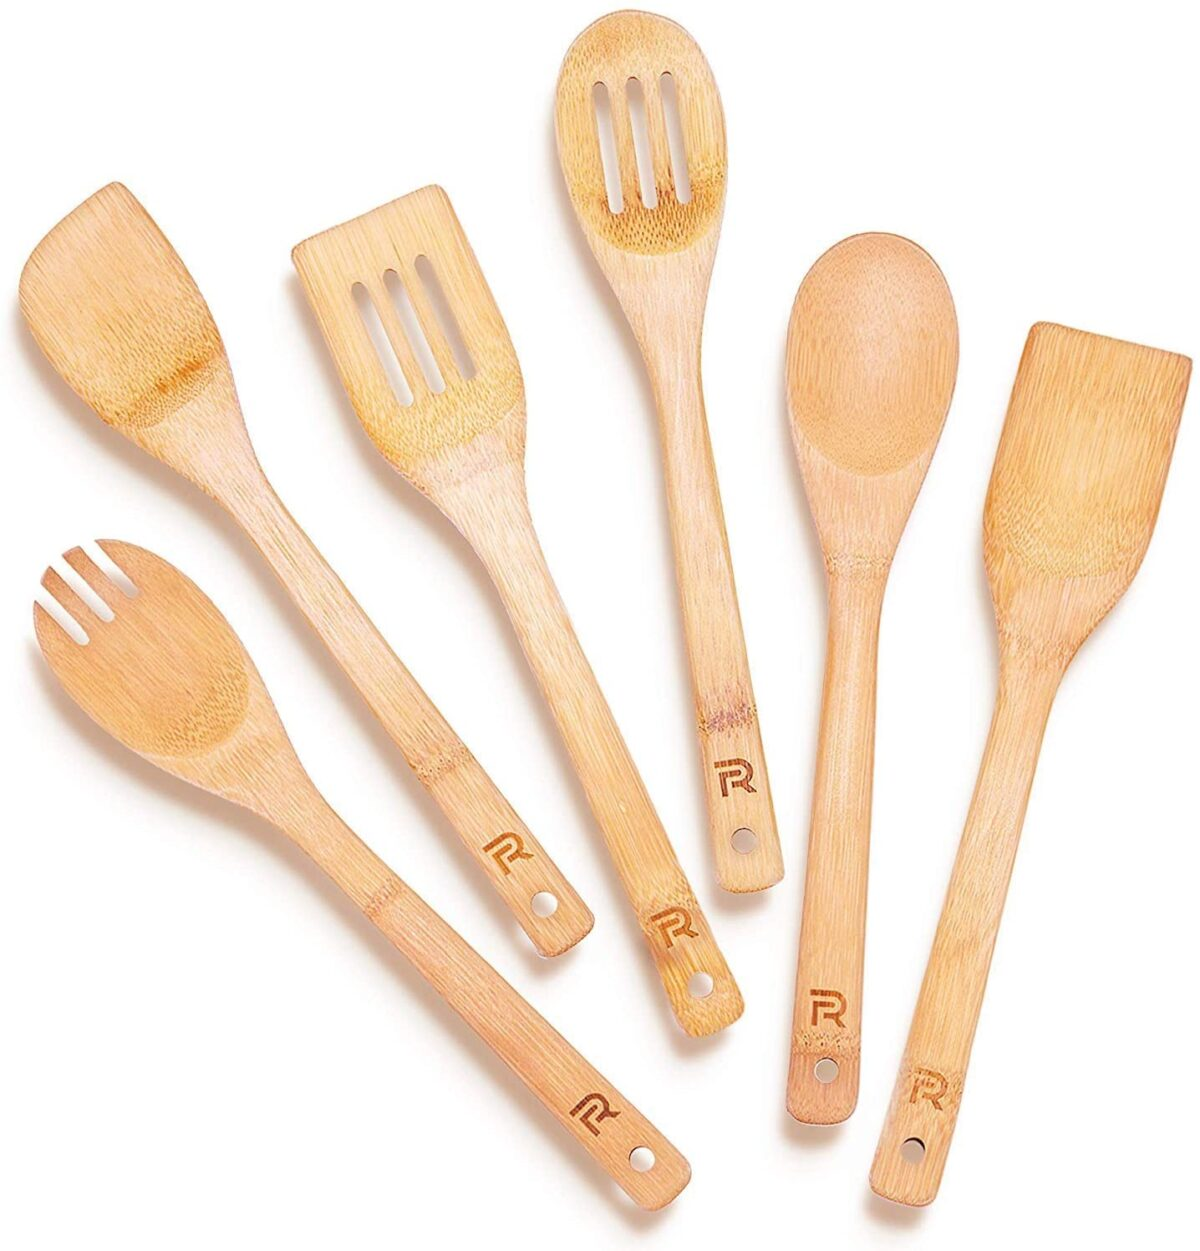 6-Piece Bamboo Utensil Set